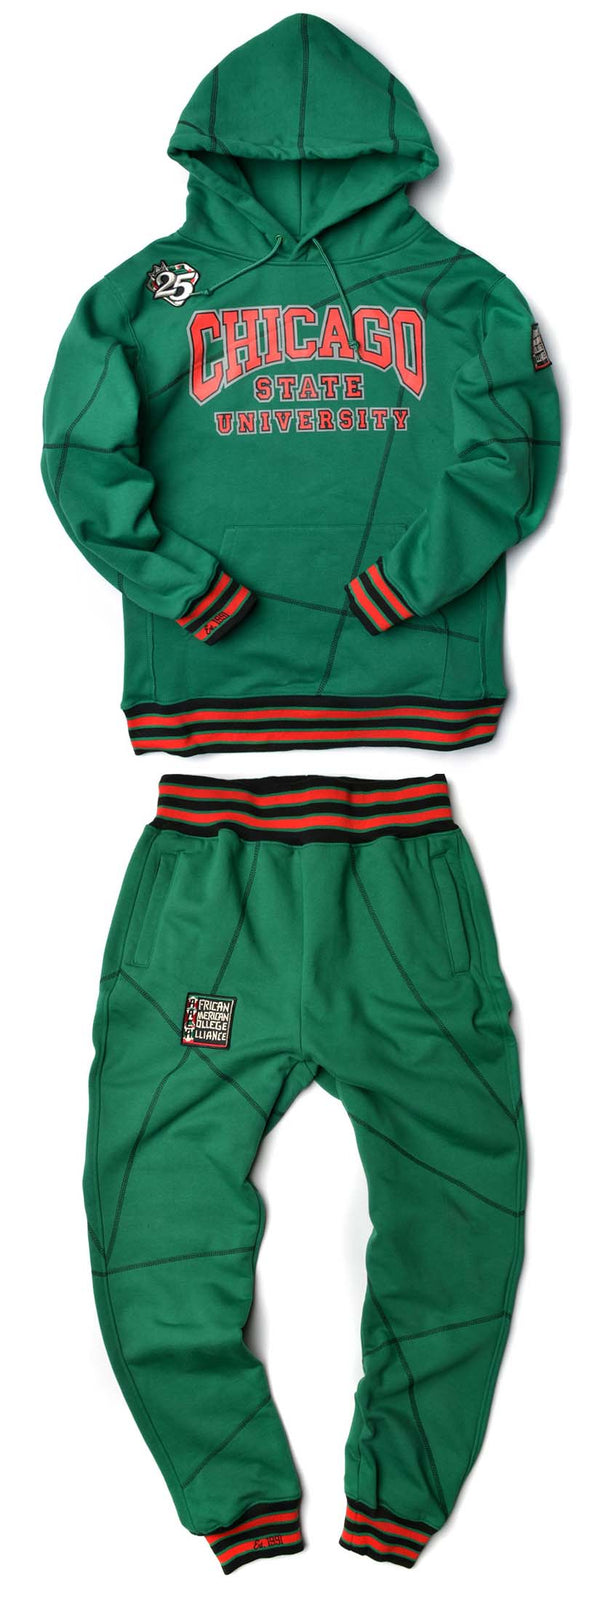 "FTP Chicago State University AACA Original '92 ""Frankenstein"" Stitched Hoodie Sweat Suit Kelly Green/Black"